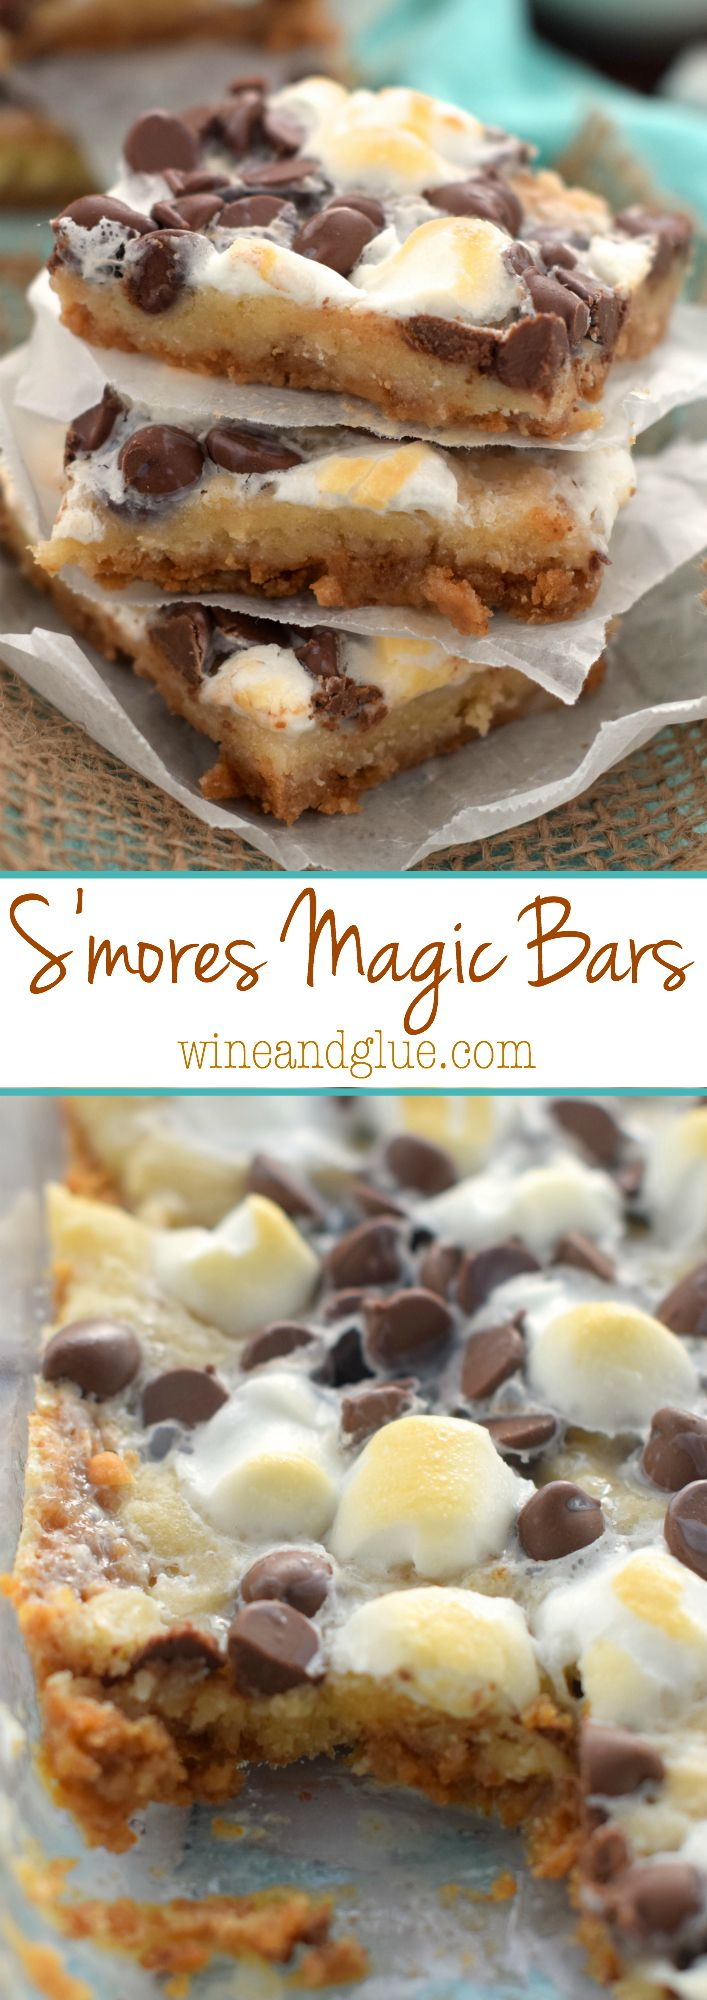 These S'mores Magic Bars will disappear almost as fast as you can make them, they are irresistible!: